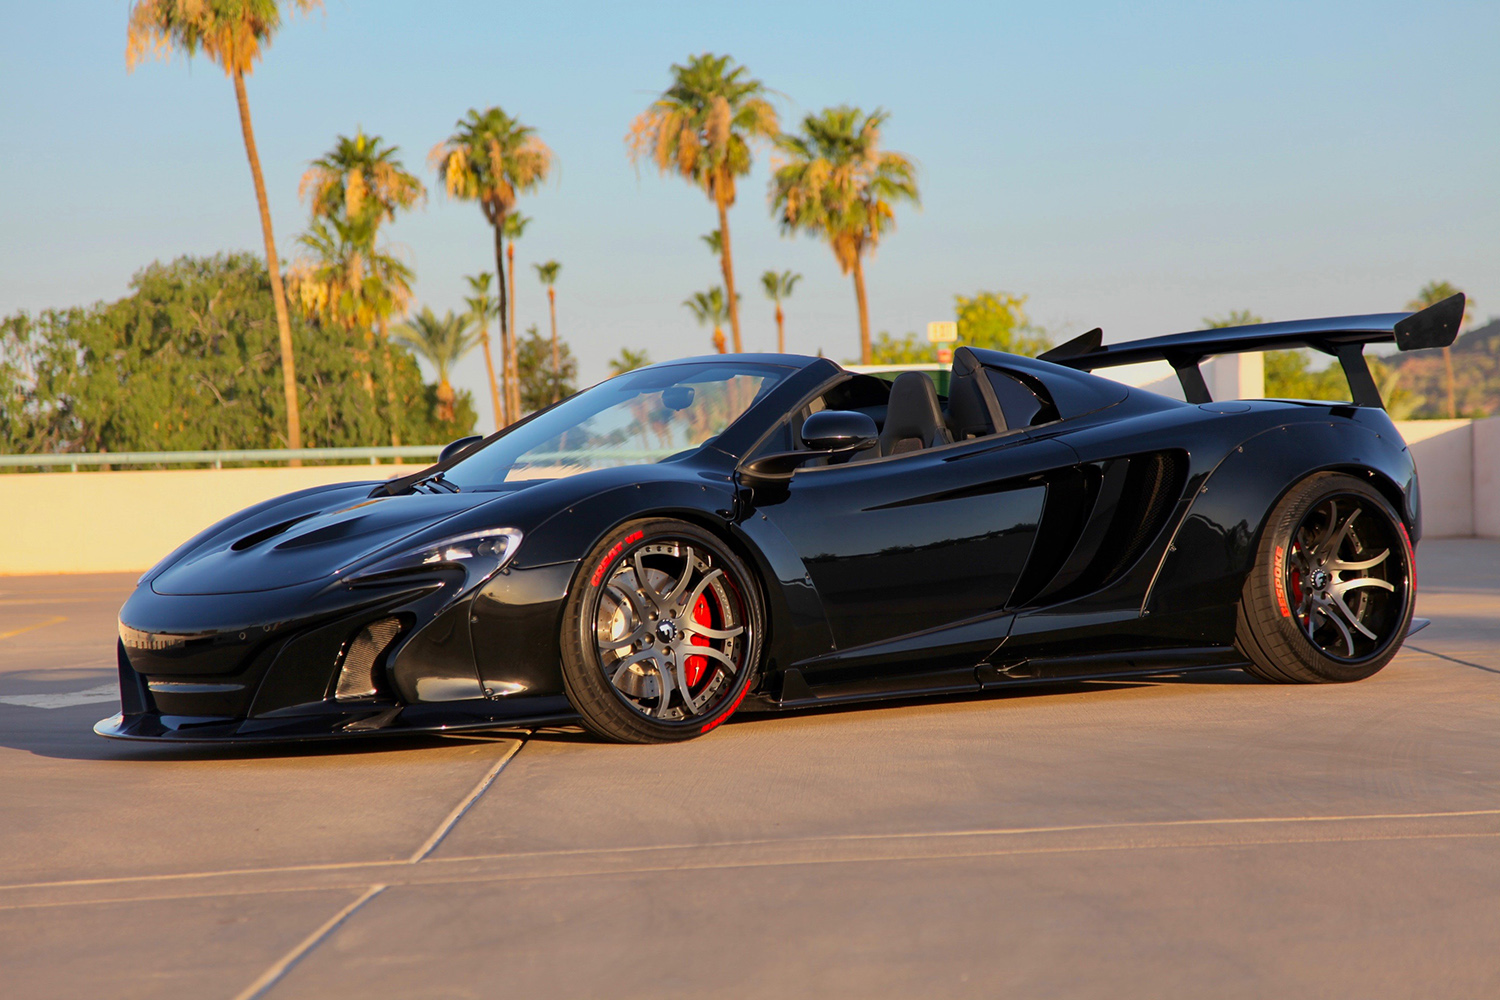 forgiato-mclaren-650s-liberty-walk-1